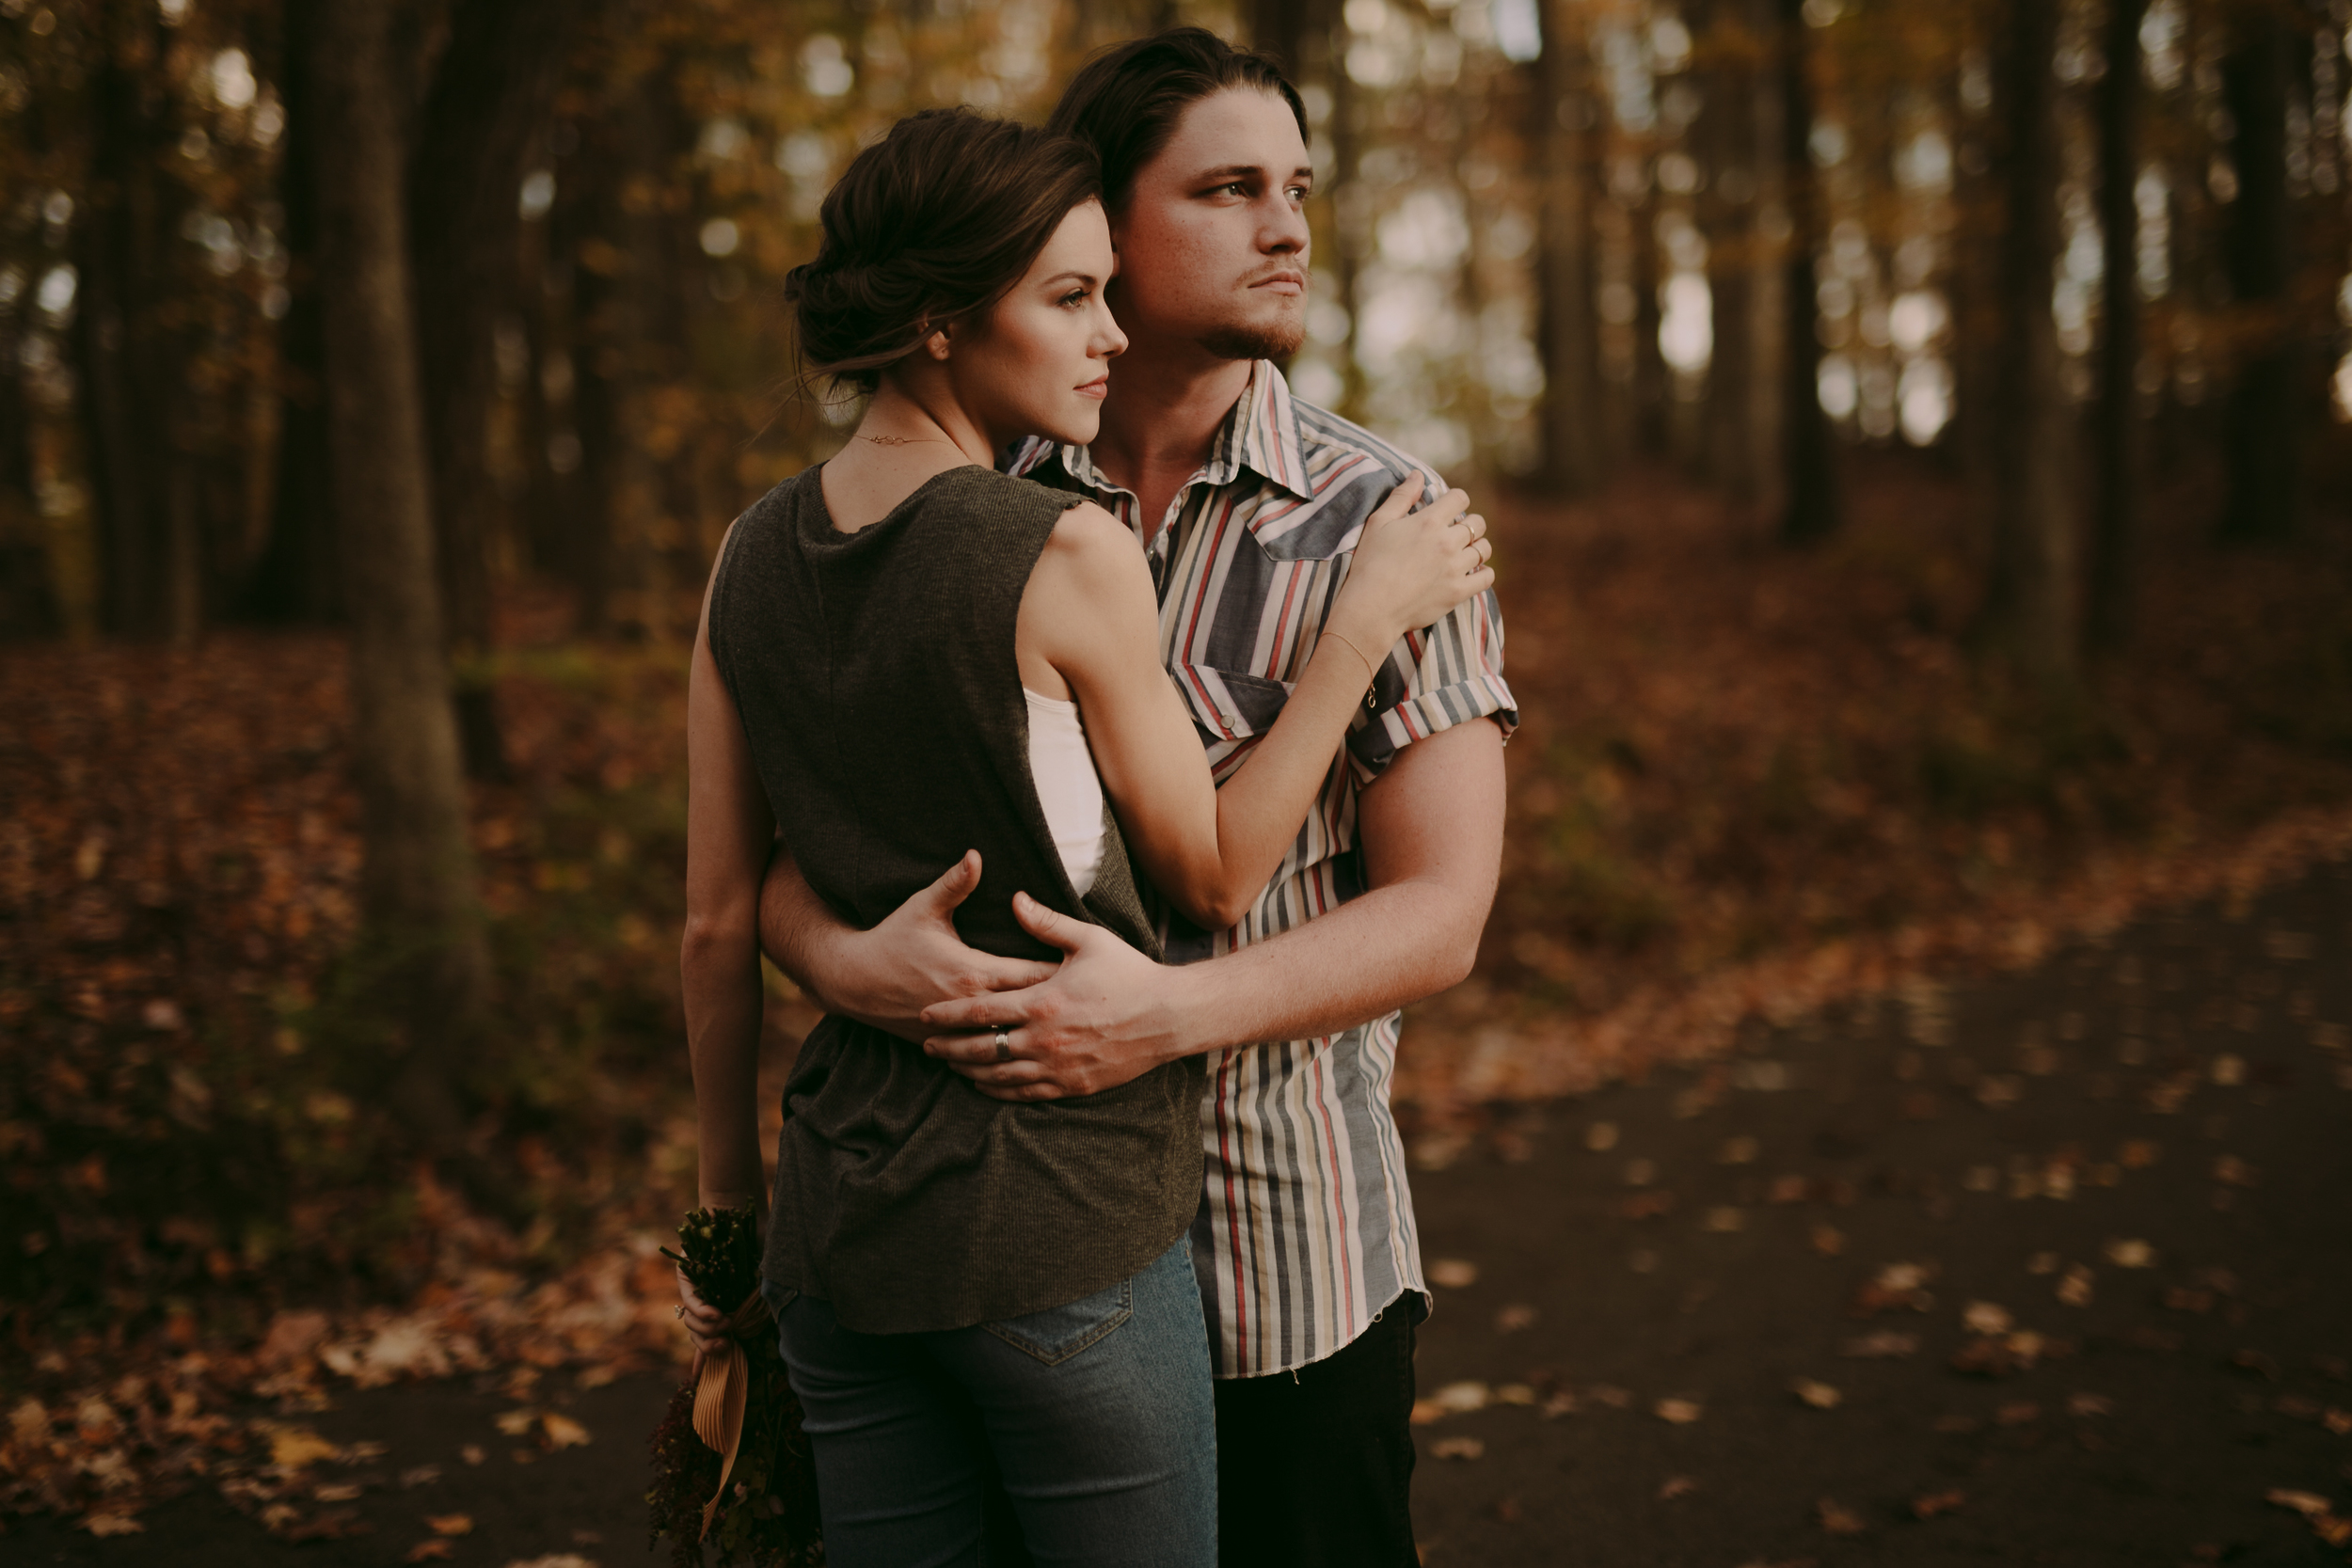 Hannah + Will Engagement Photos at Percy Warner Photography Anthology (5 of 30).jpg